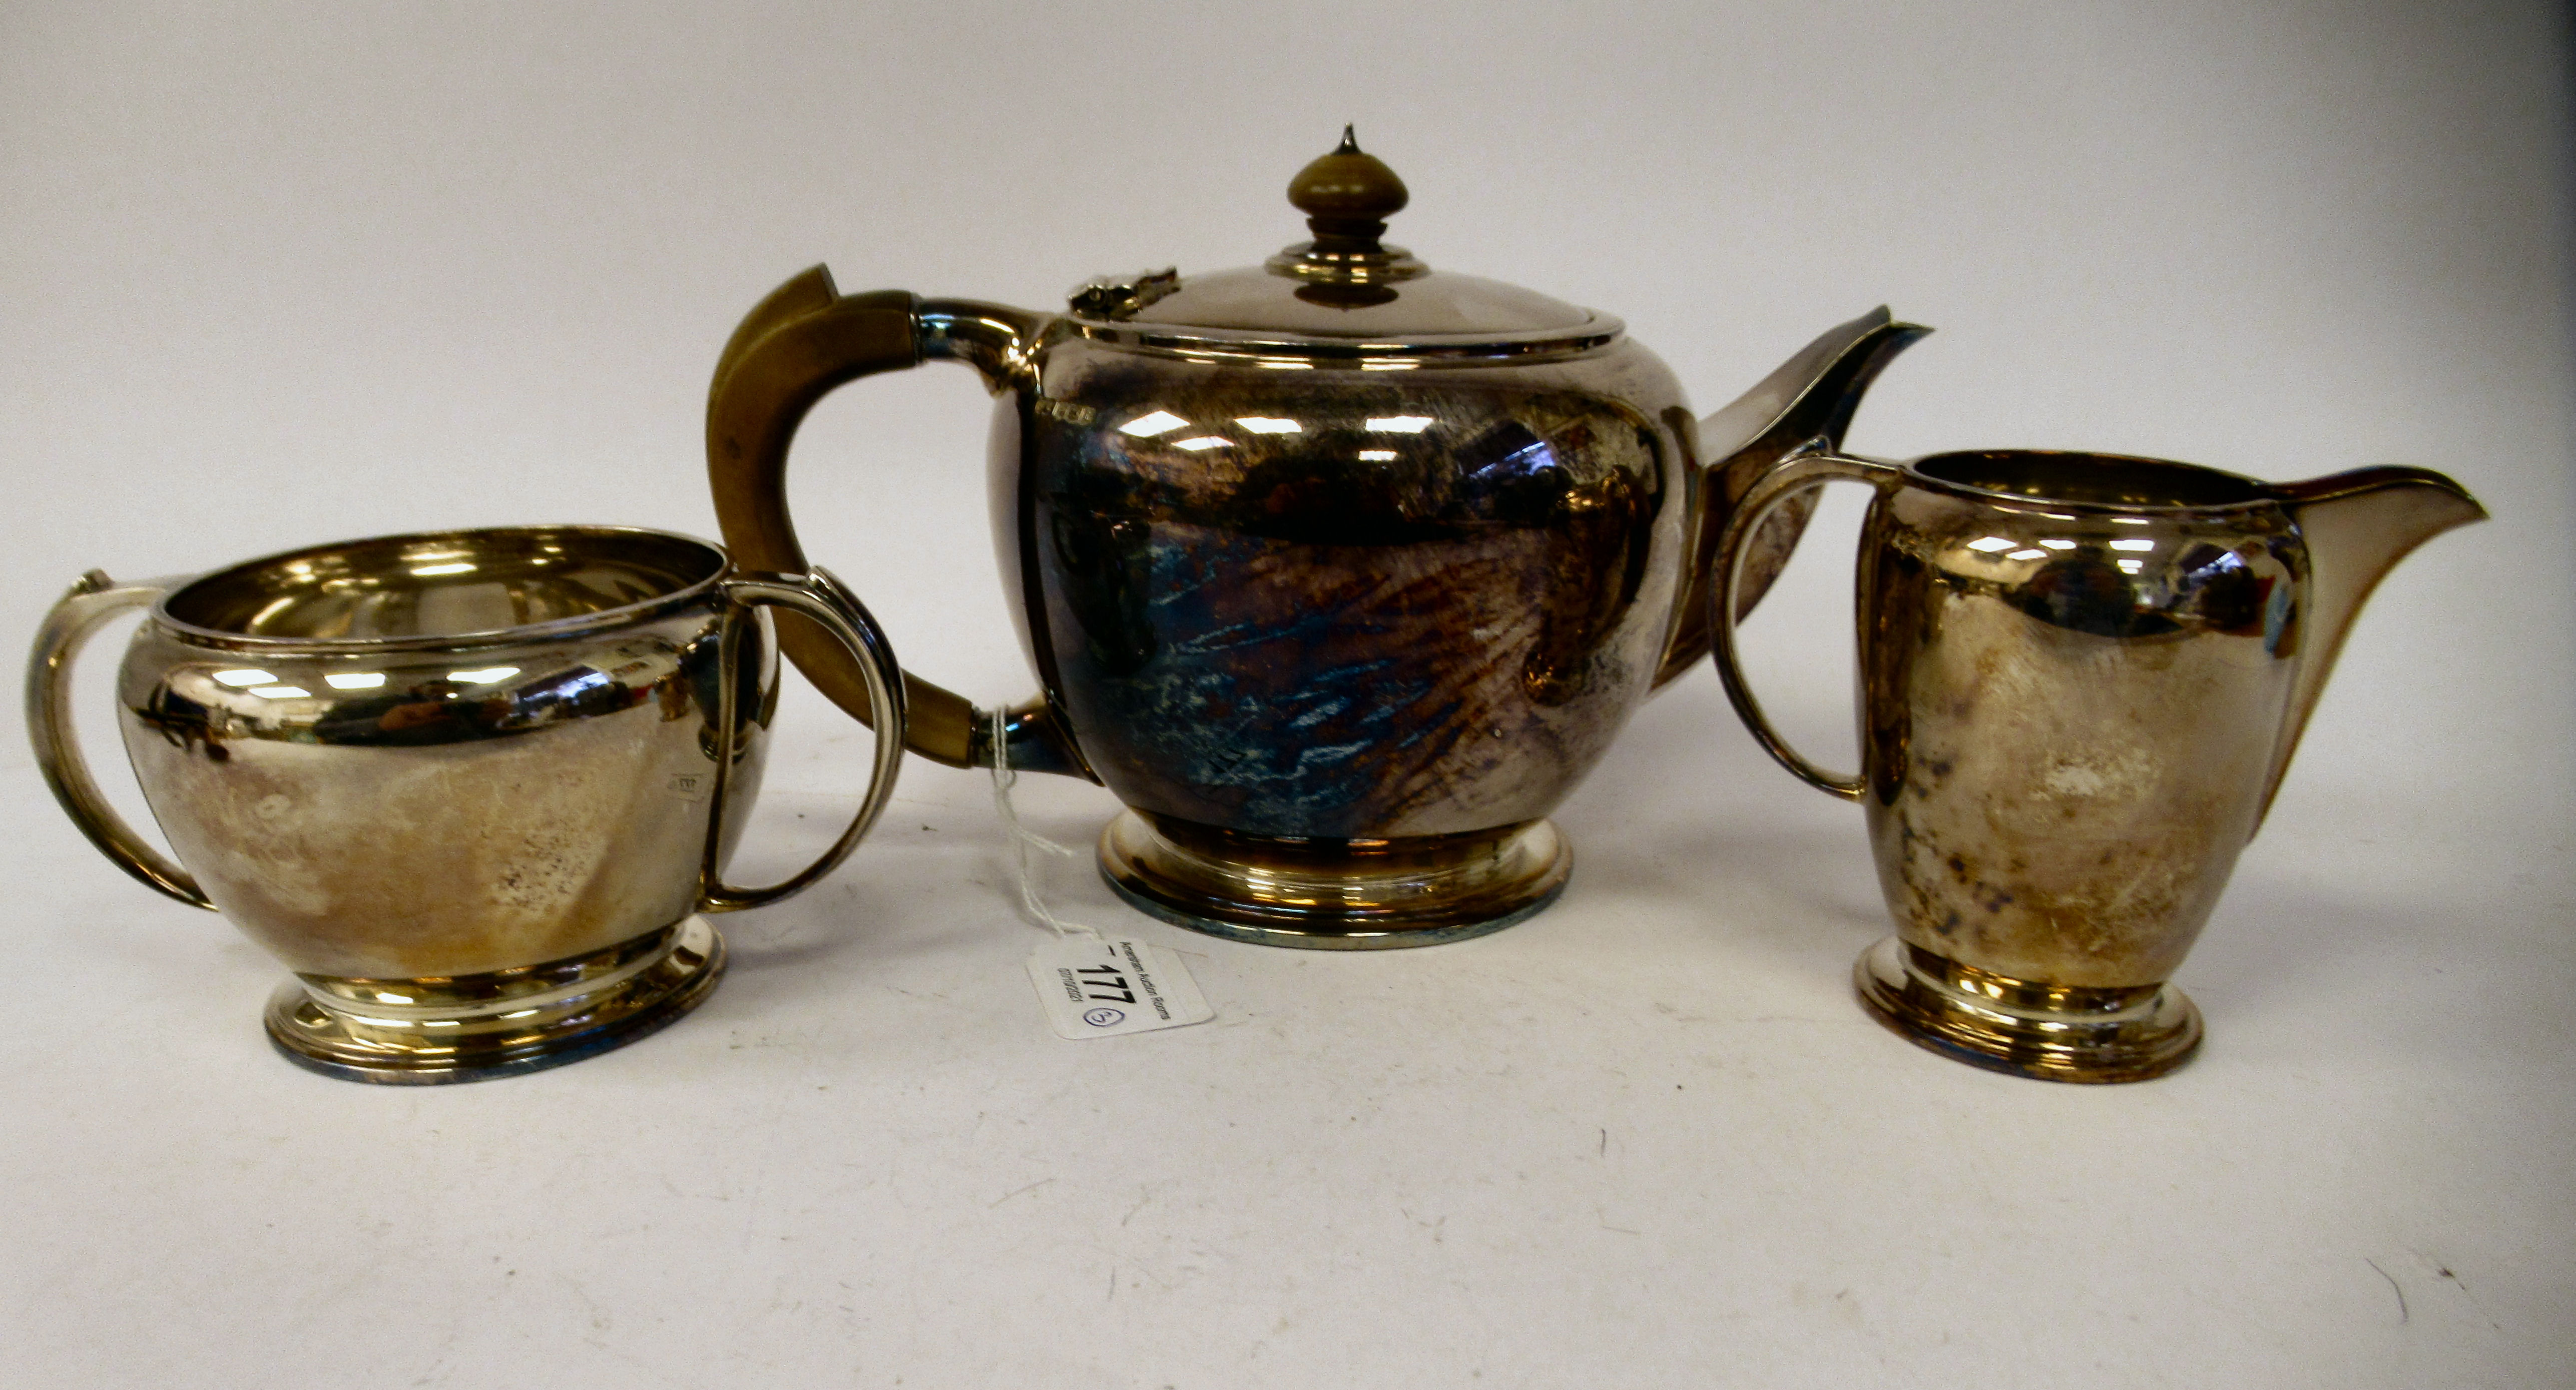 A three piece silver tea set of bulbous form, comprising a teapot with a short spout, an insulated